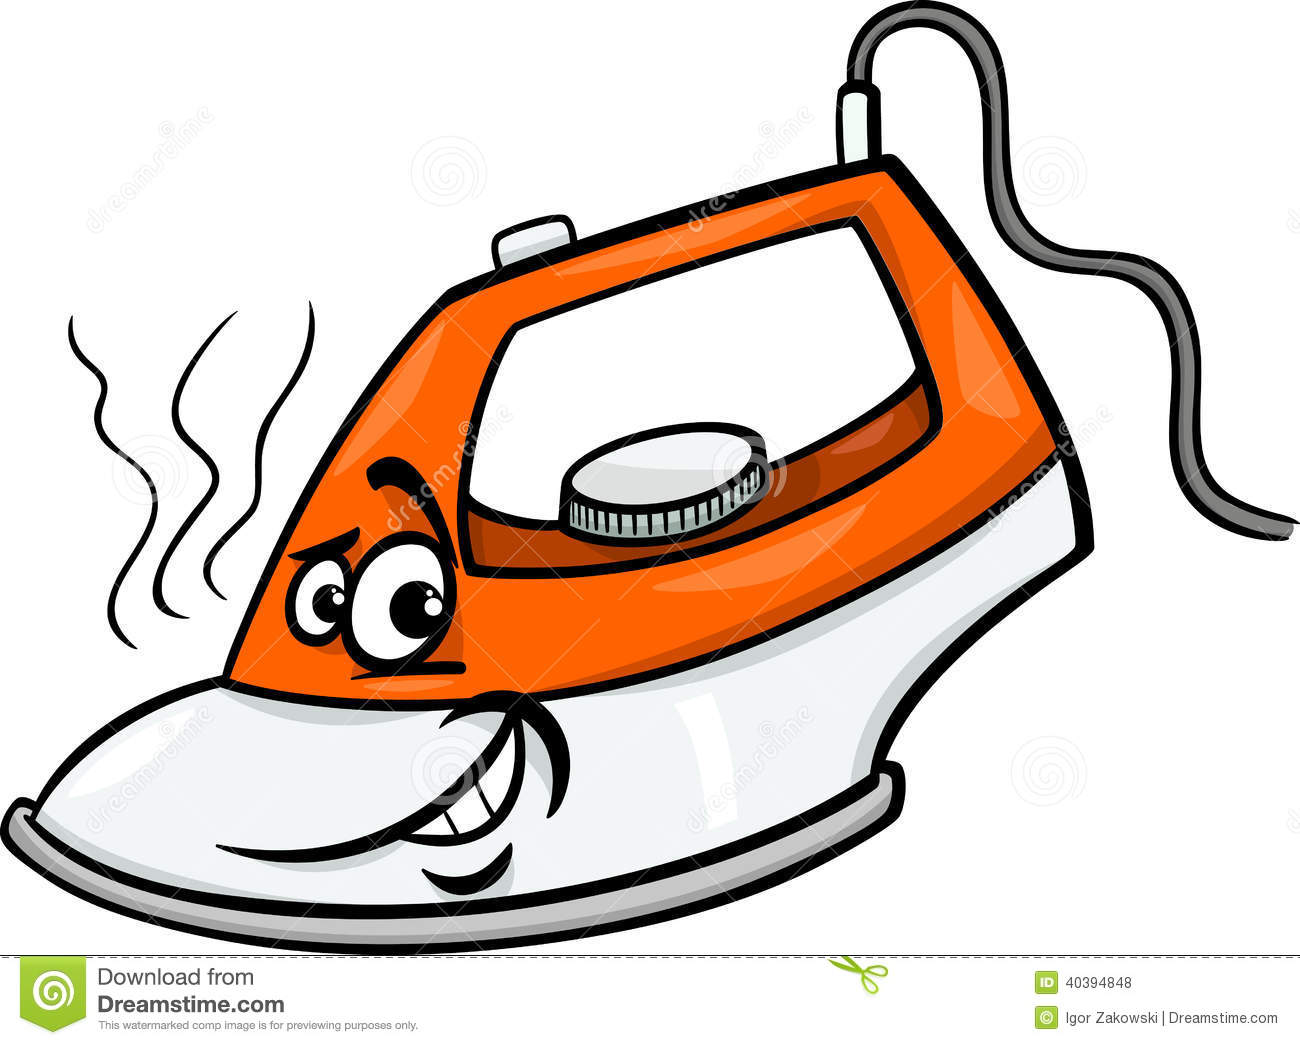 Hot Iron Cartoon Illustration Stock Vector - Image: 40394848